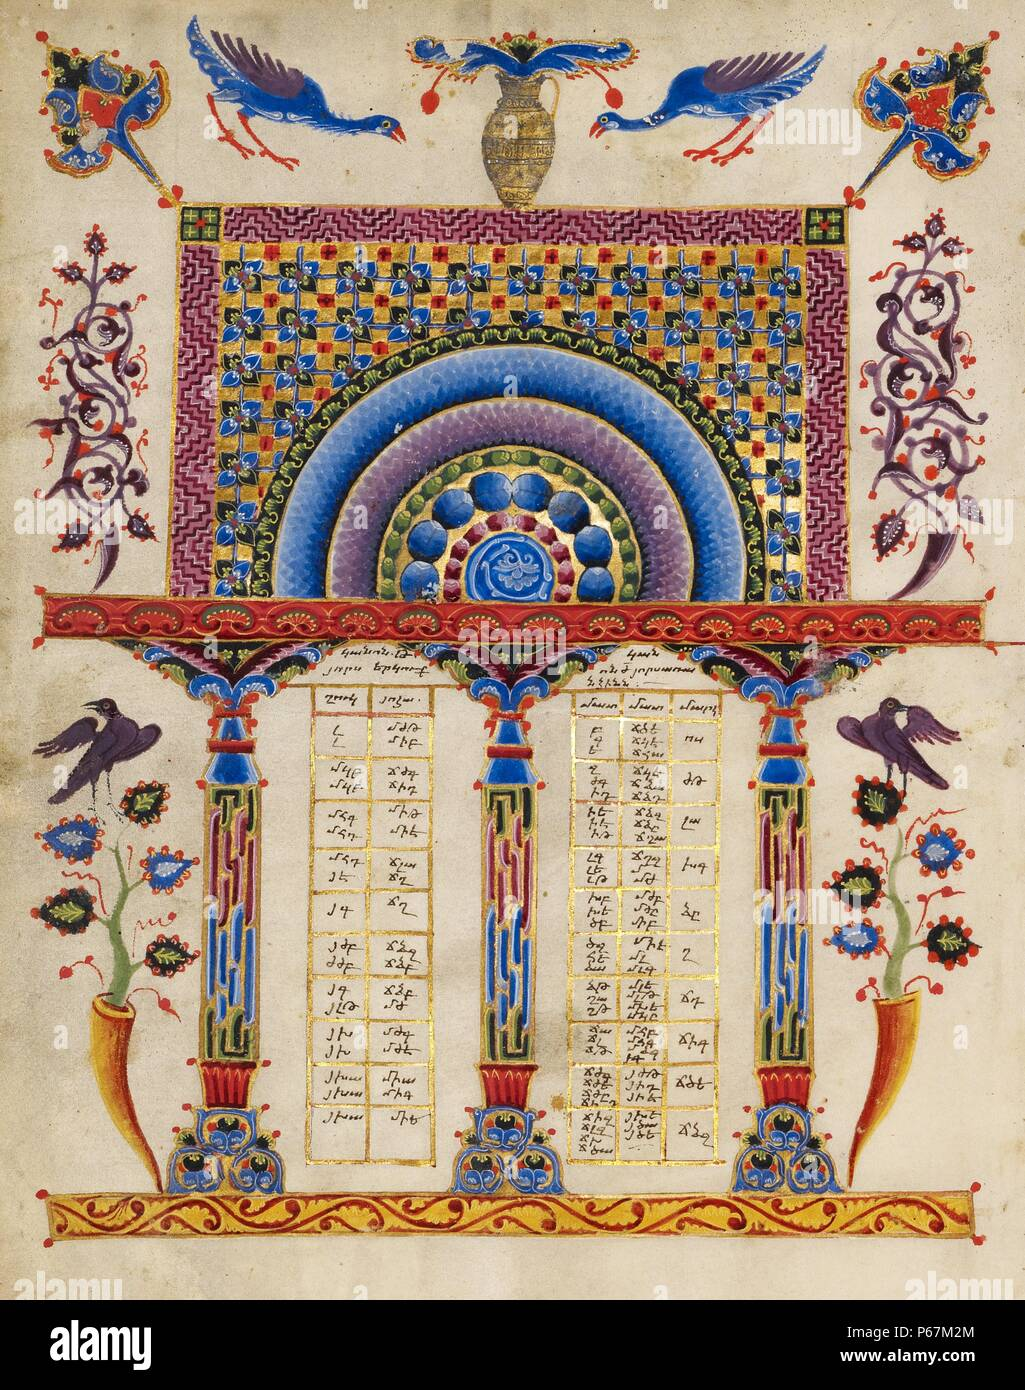 Canon Table Page by Toros Roslin (1210-1270) Armenian manuscript illuminator in the High Middle Ages. Dated 13th Century - Stock Image